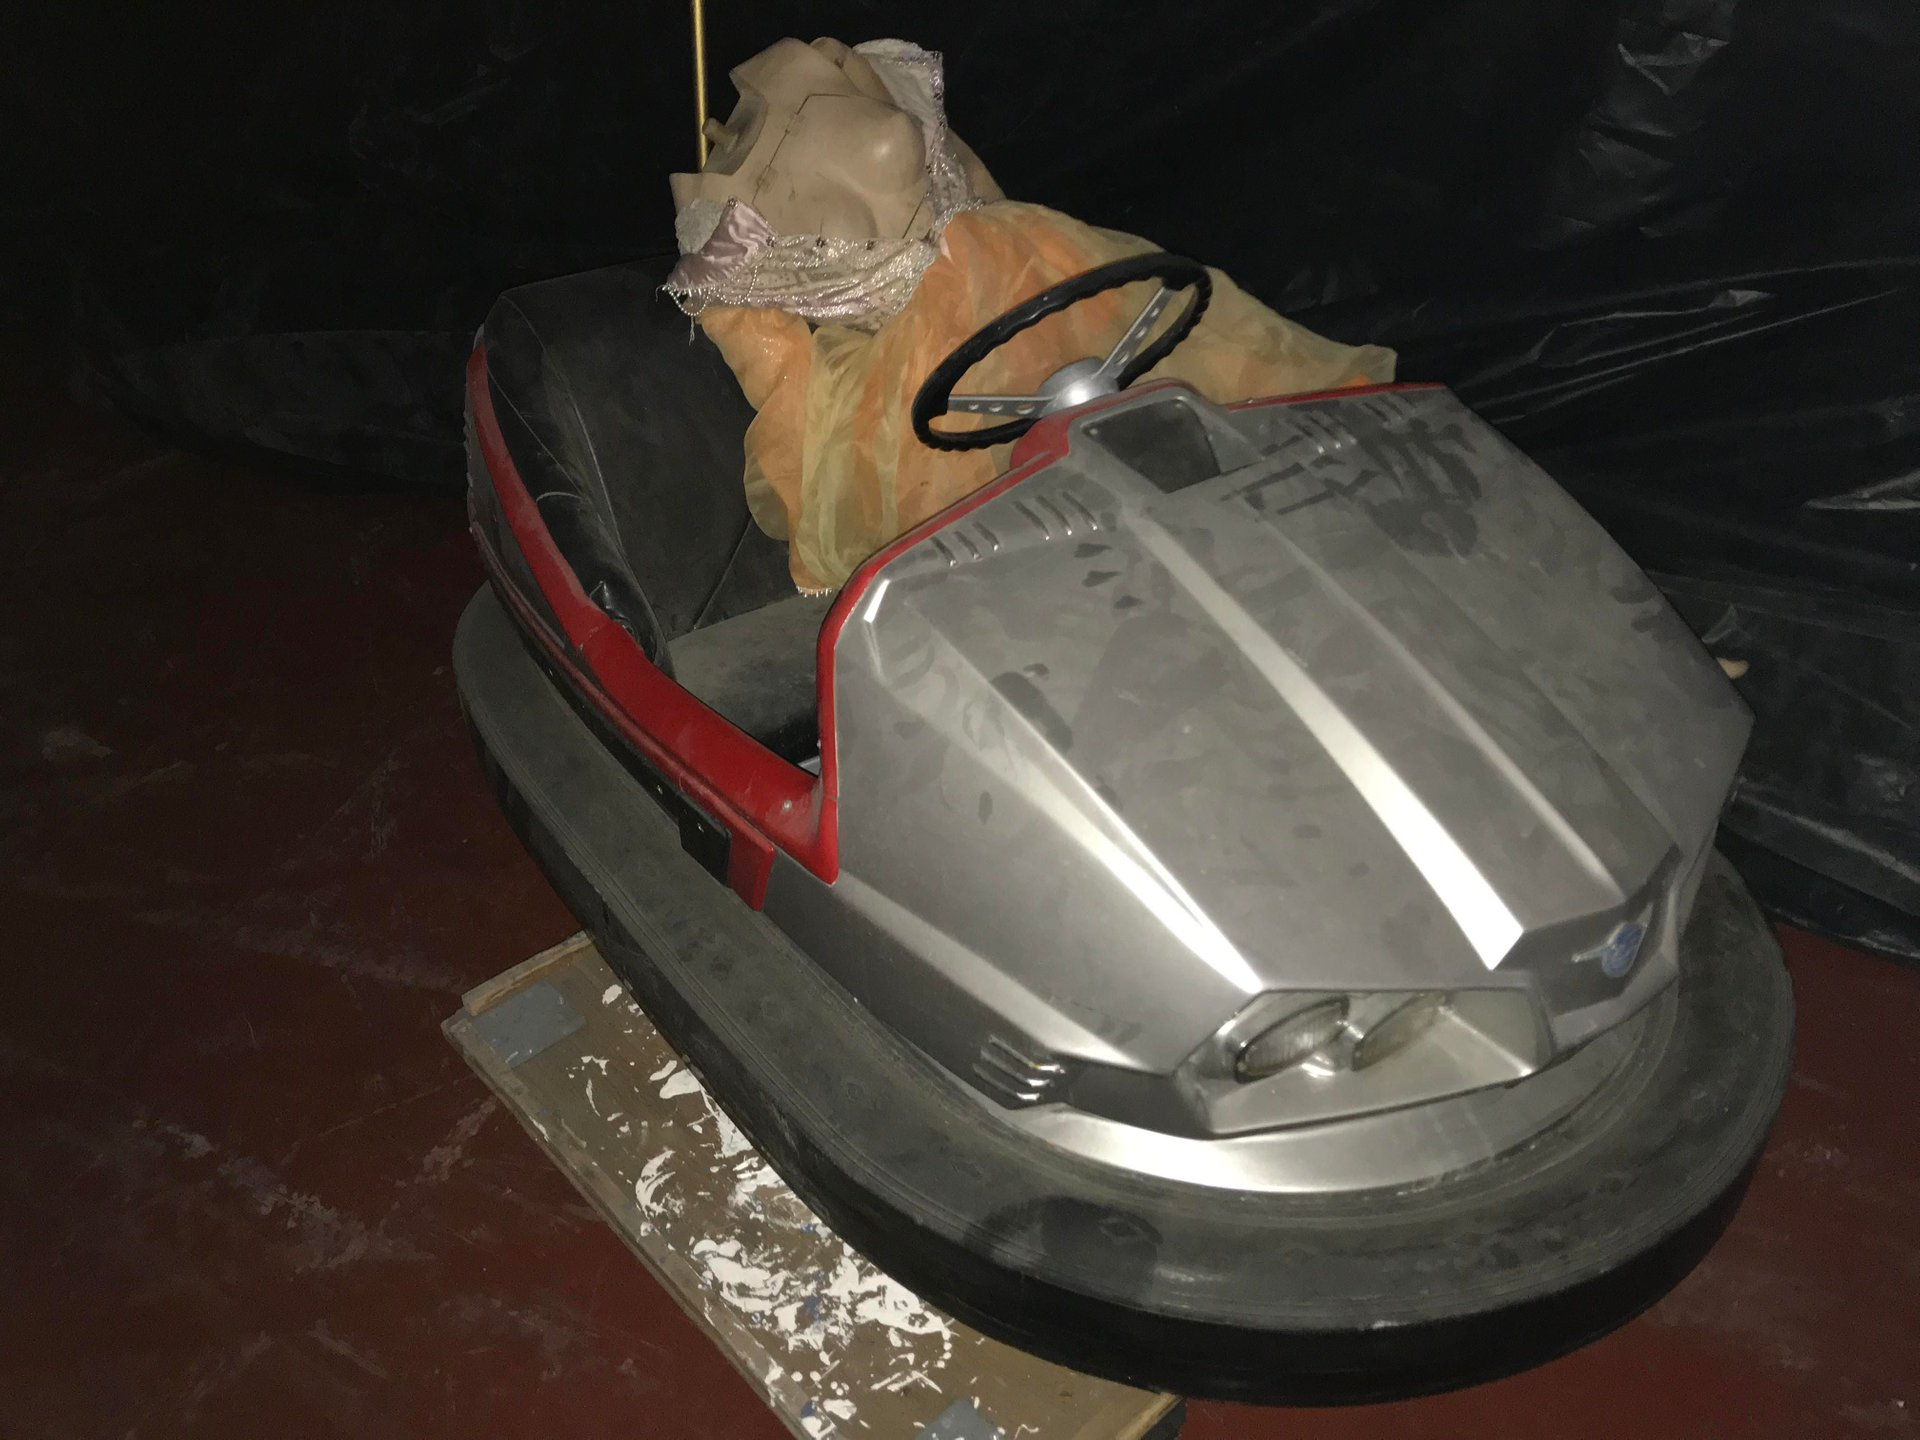 1960 french connection bumper car